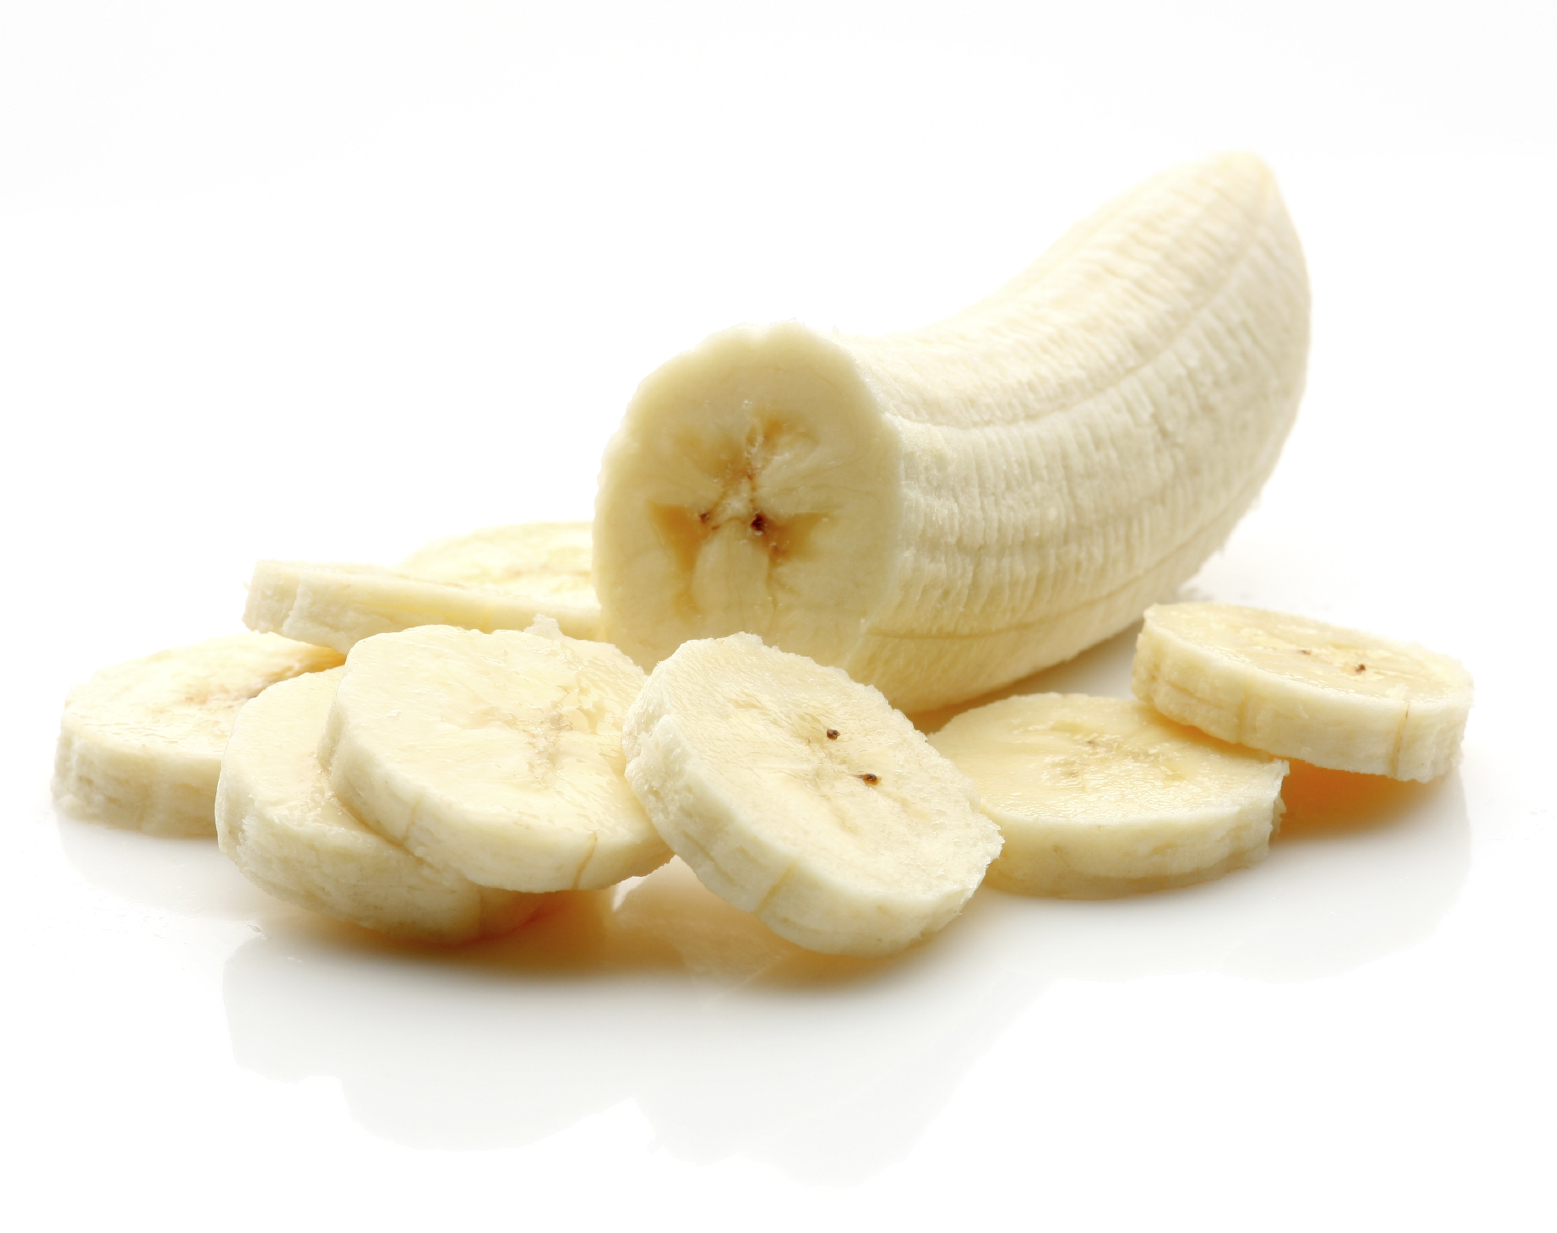 how to store cut bananas